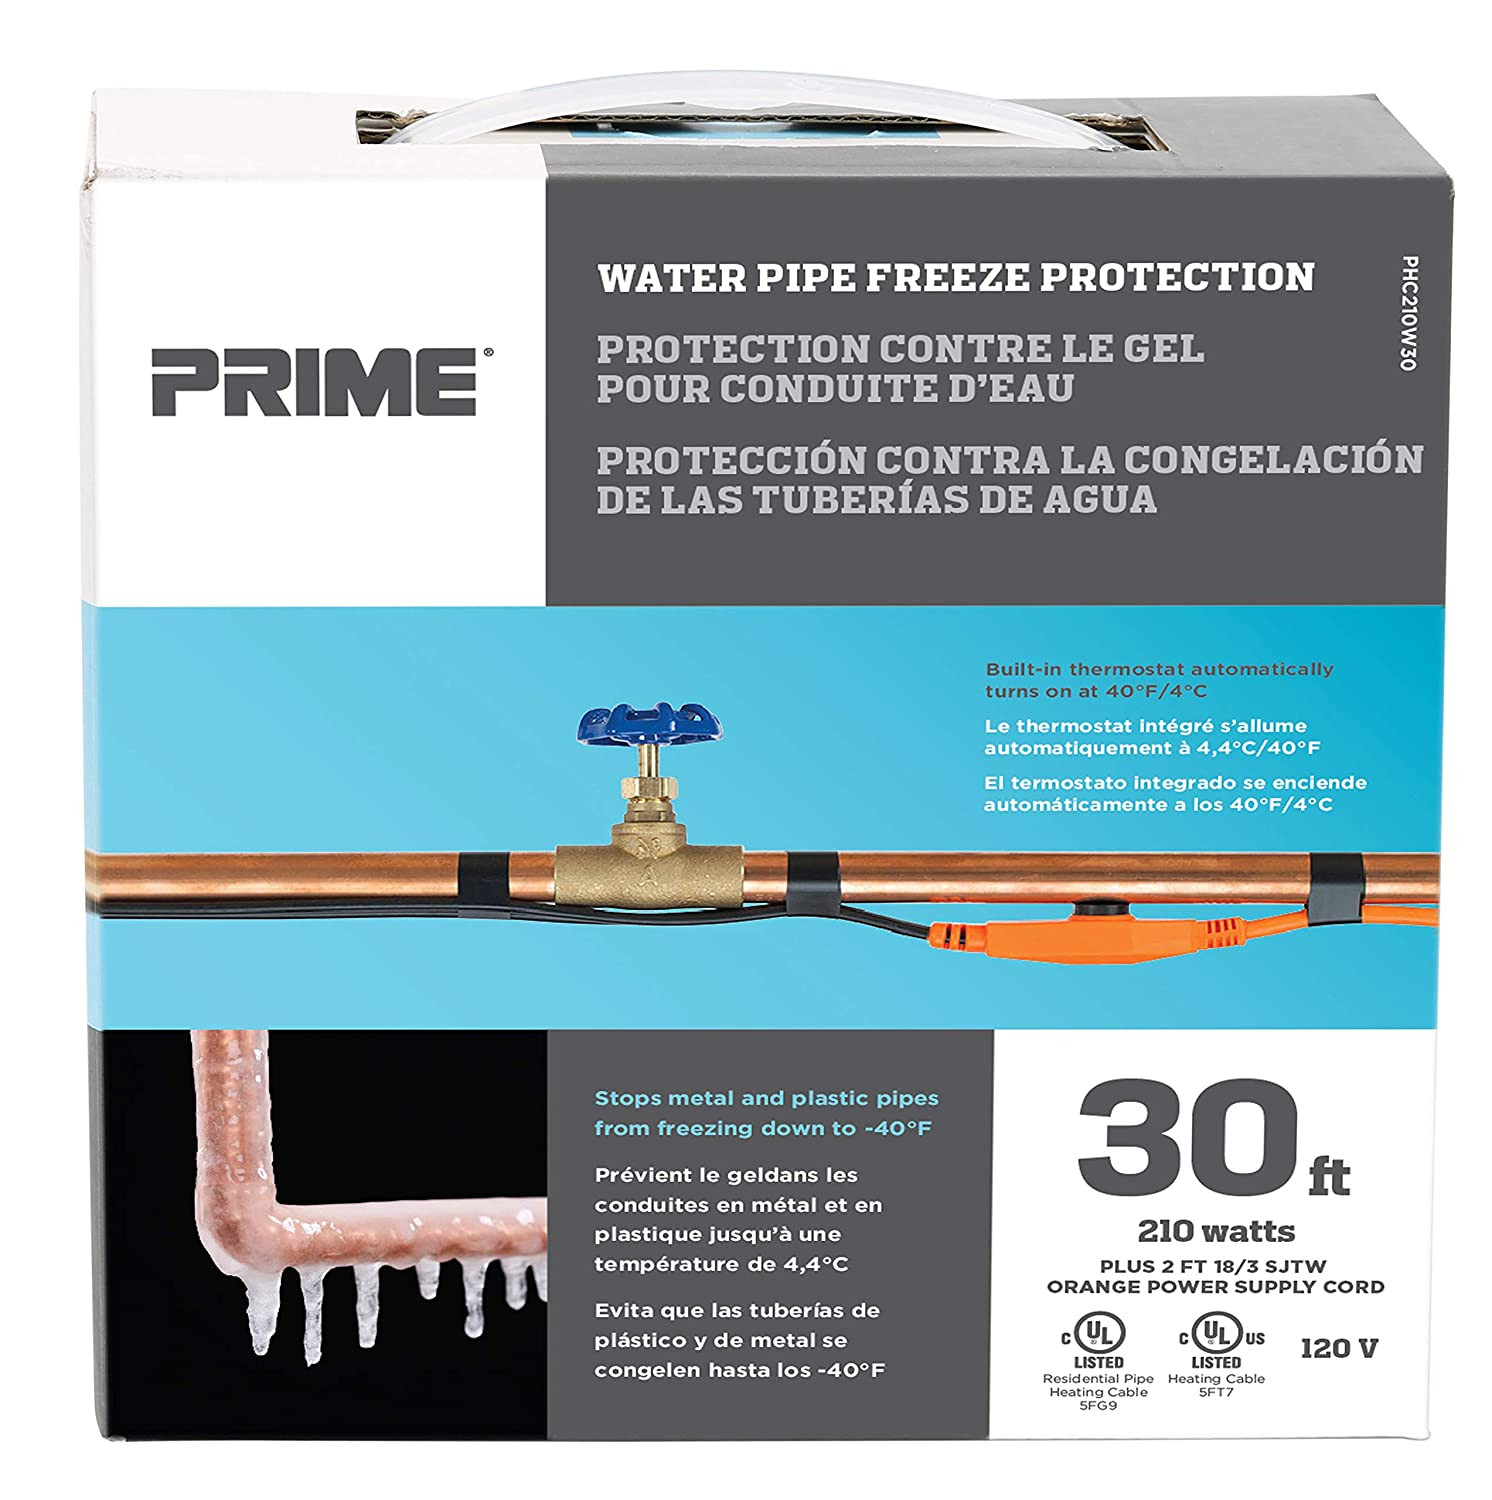 Prime Wire & Cable PHC210W30 DE-ICING CABLE WATER PIPE FREEZE PROTECTION - - Amazon.com